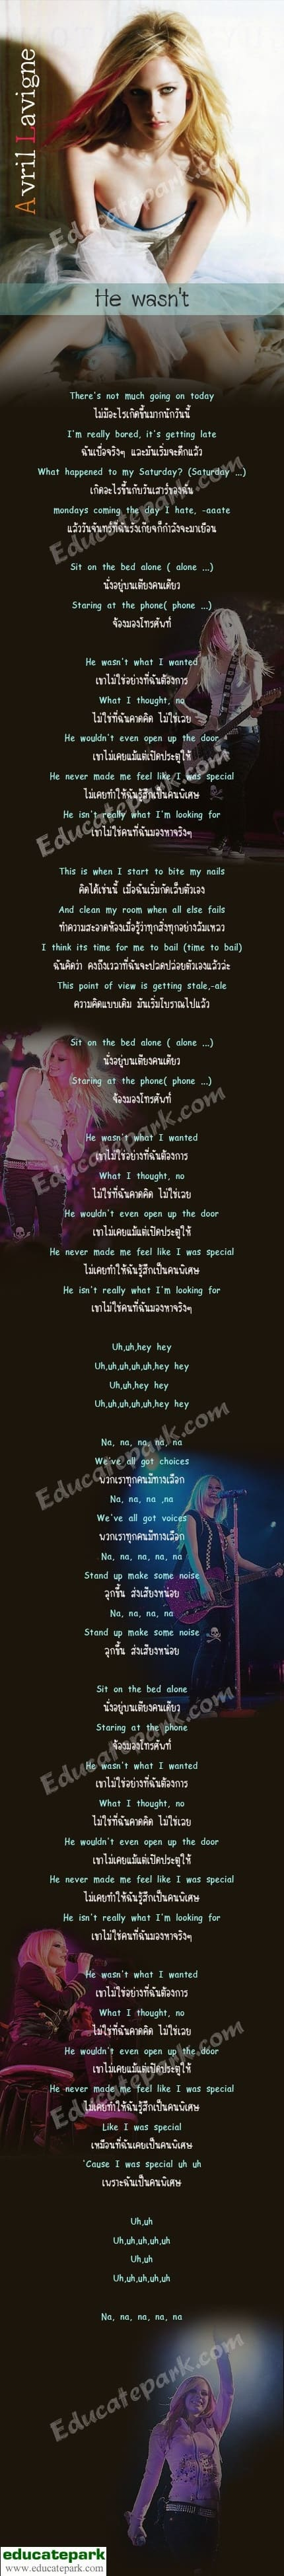 แปลเพลง He wasn't - Avril Lavigne